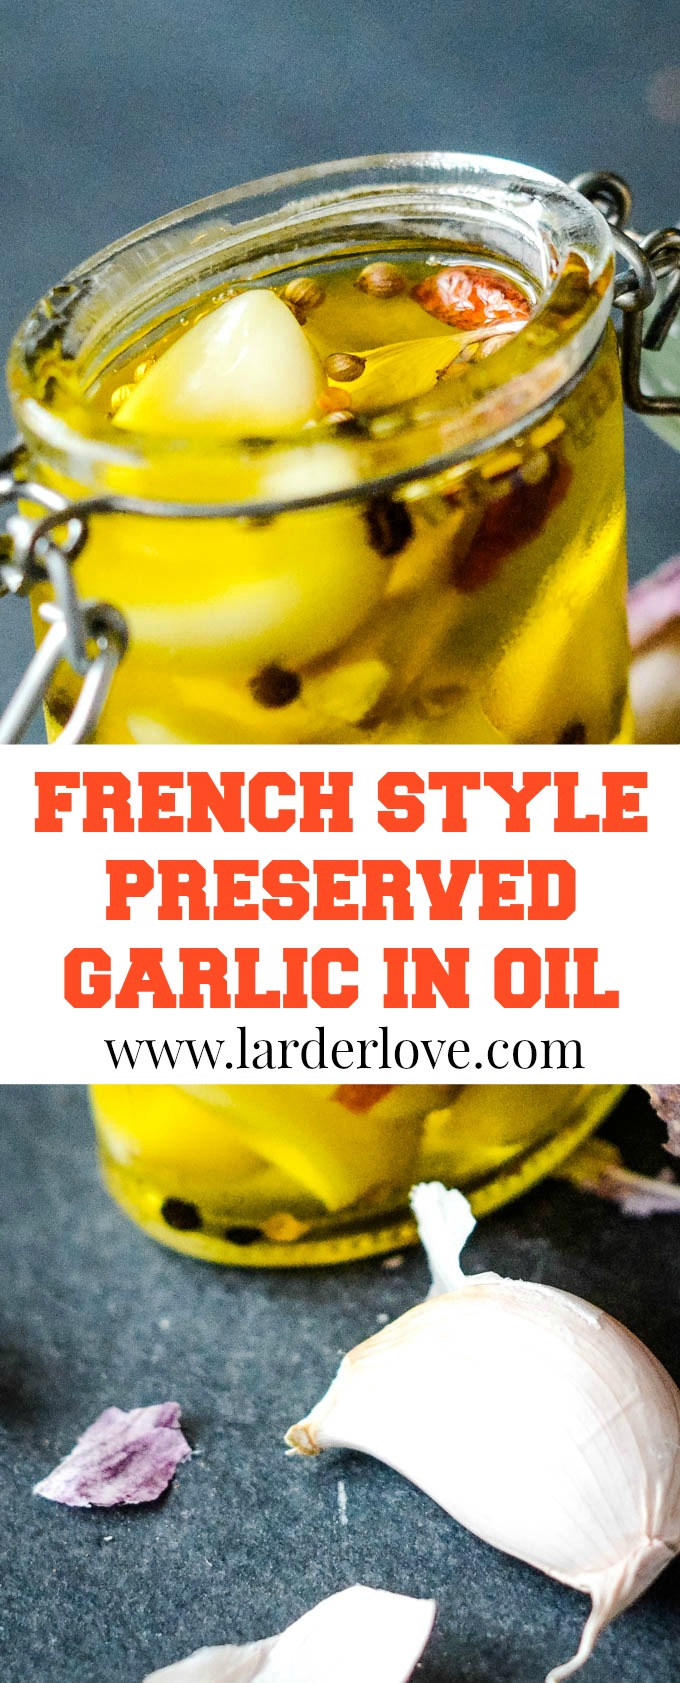 French style garlic preserved in oil pin image